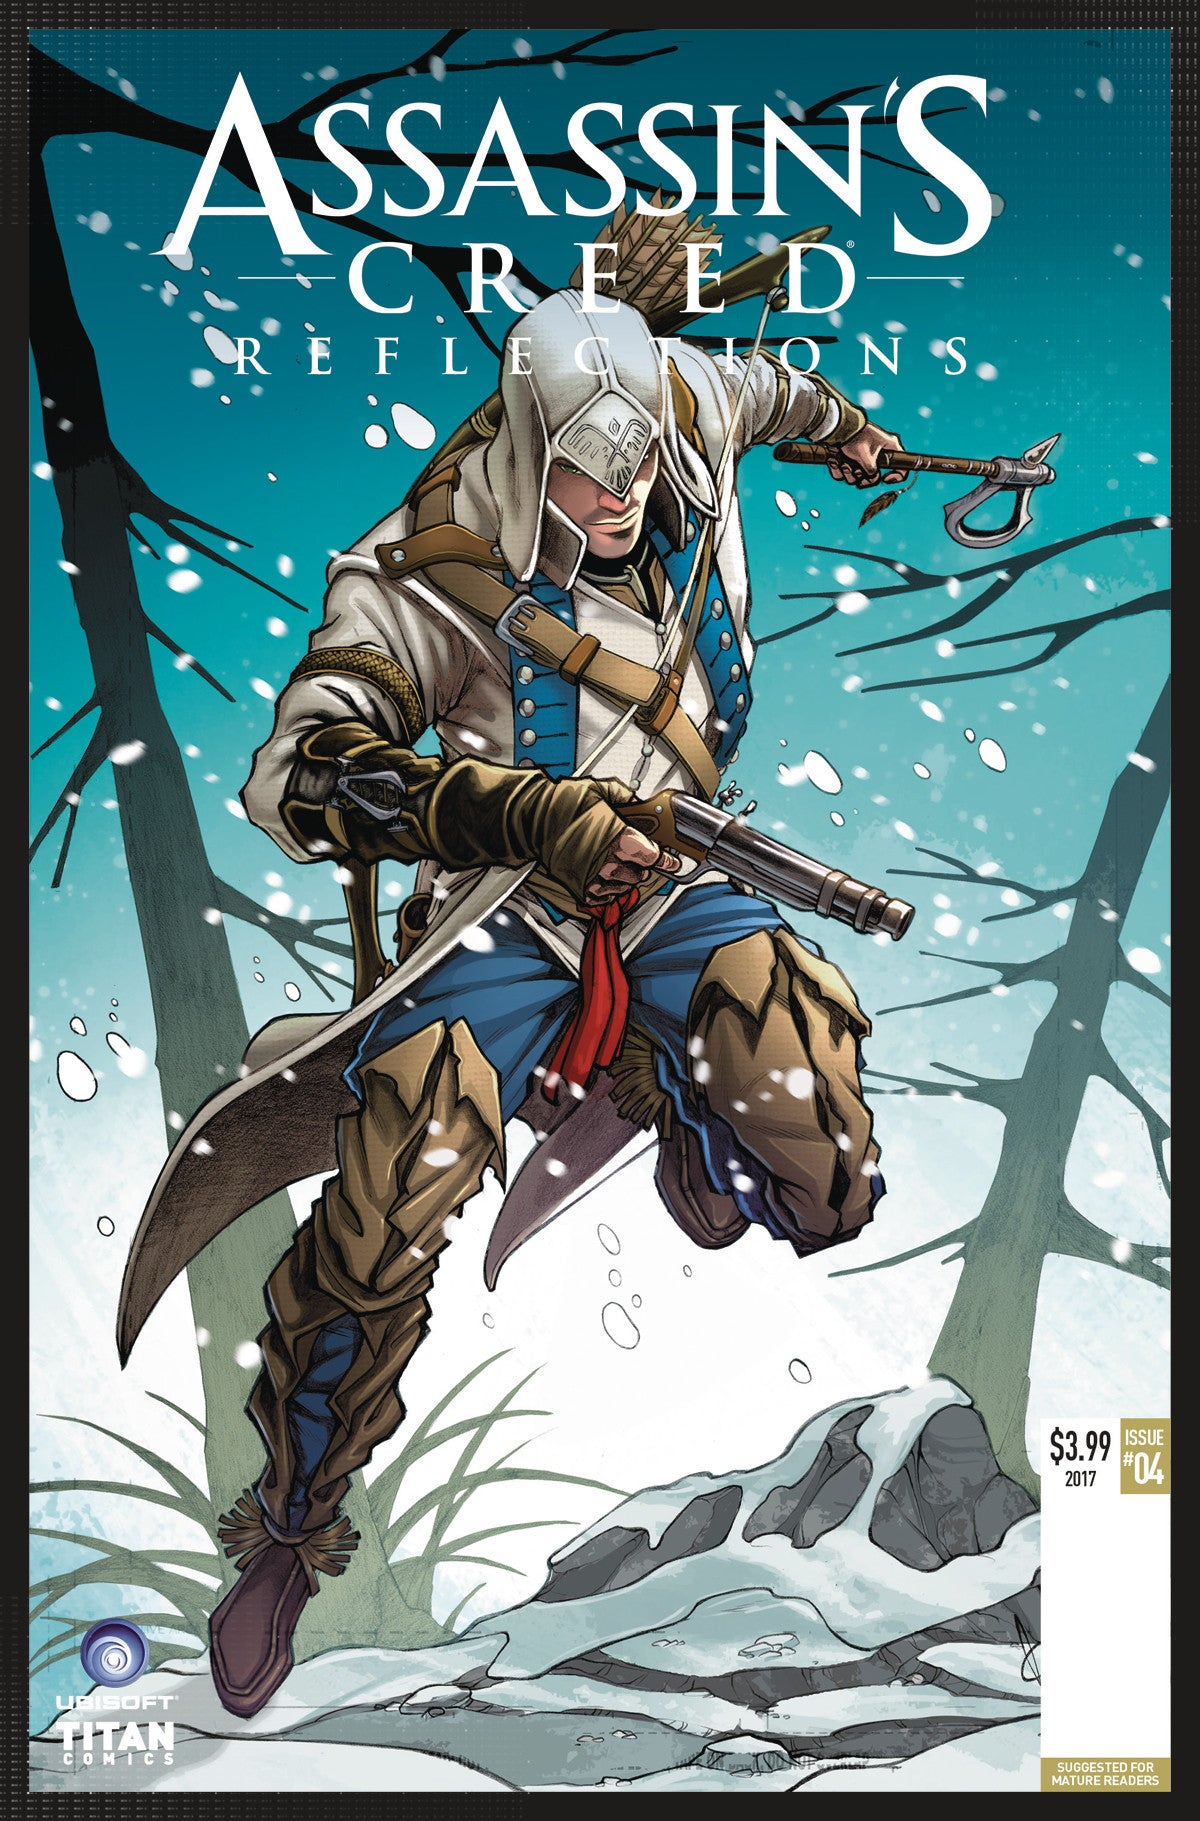 ASSASSINS CREED REFLECTIONS #4 (OF 4) CVR B NACHO